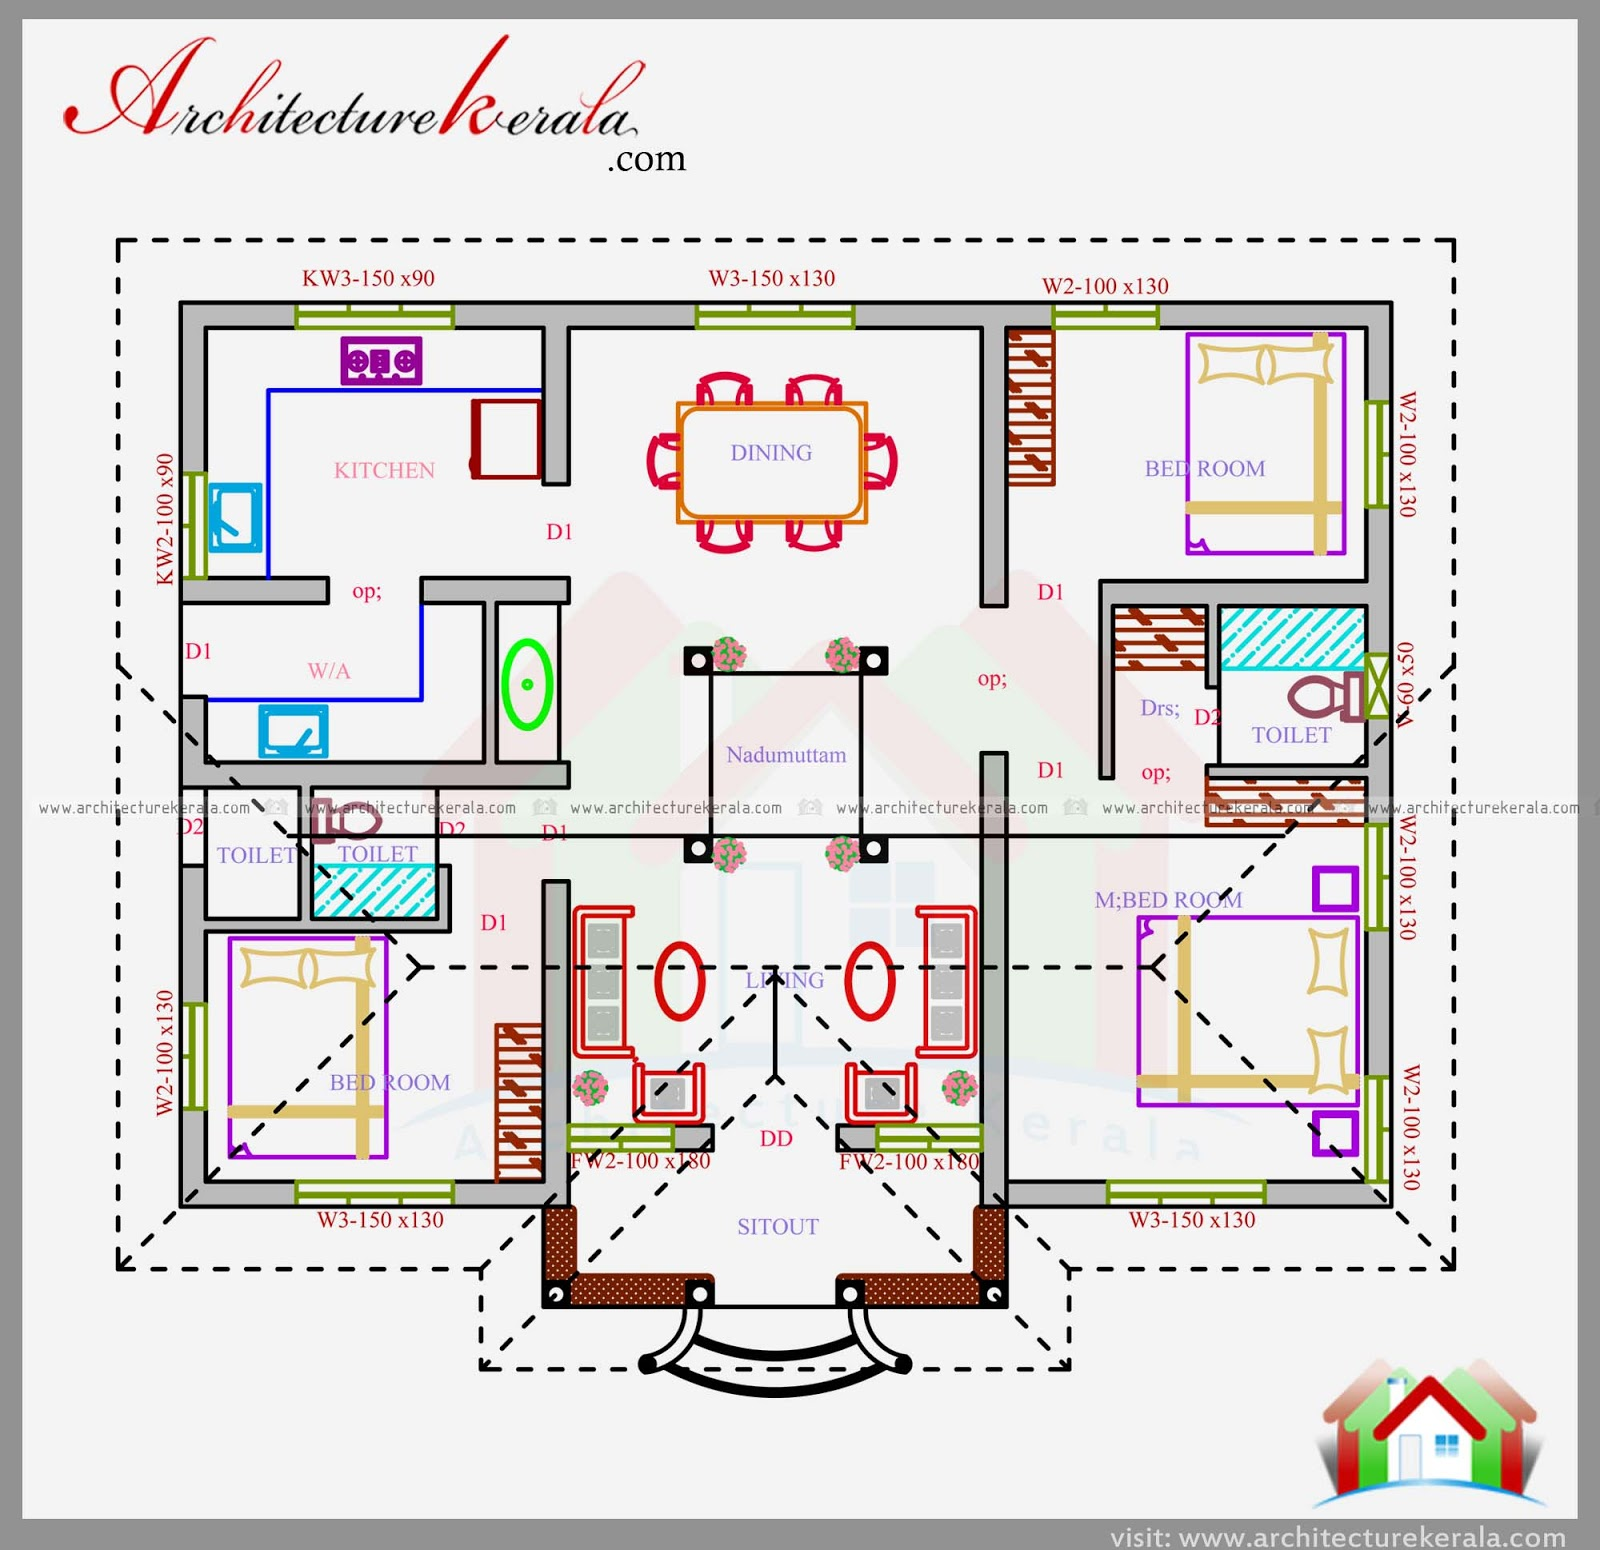 Wonderful 1200 SQ FT HOUSE PLAN IN NALUKETTU DESIGN